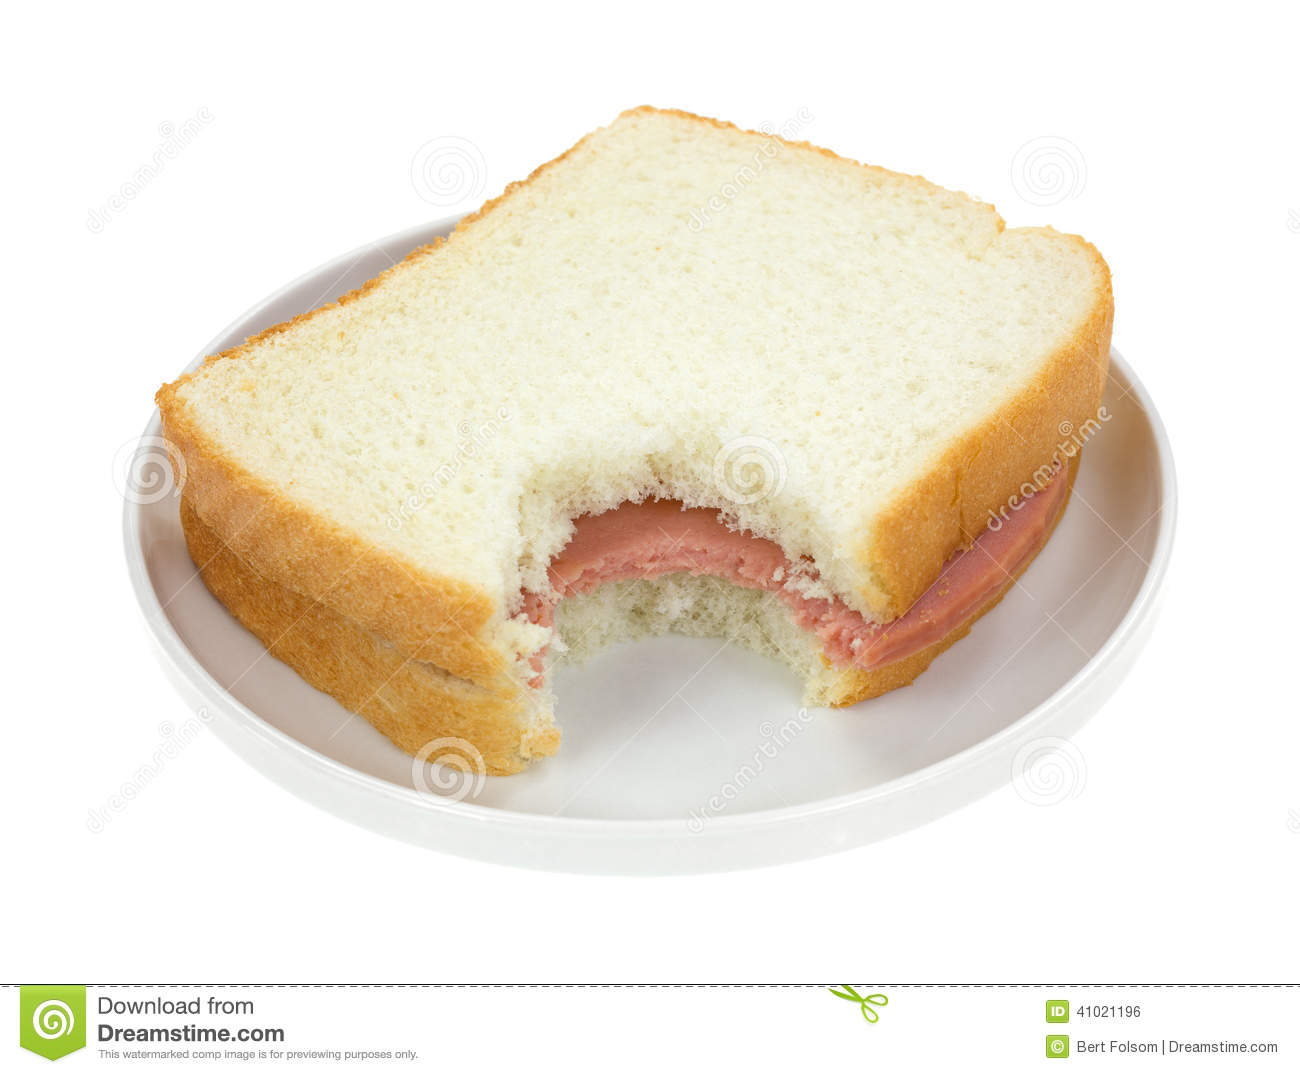 Stock Image Bologna Sandwich Apple Milk Cheese Potato Chips Glass Image33979861 additionally Dagwood further Stock Photo Bitten Baloney Sandwich White Bread Small Plate Image41021196 also Cooked Boiled Rolled Ham Sausage Isolated 245566597 in addition 10292581. on baloney lunch meat